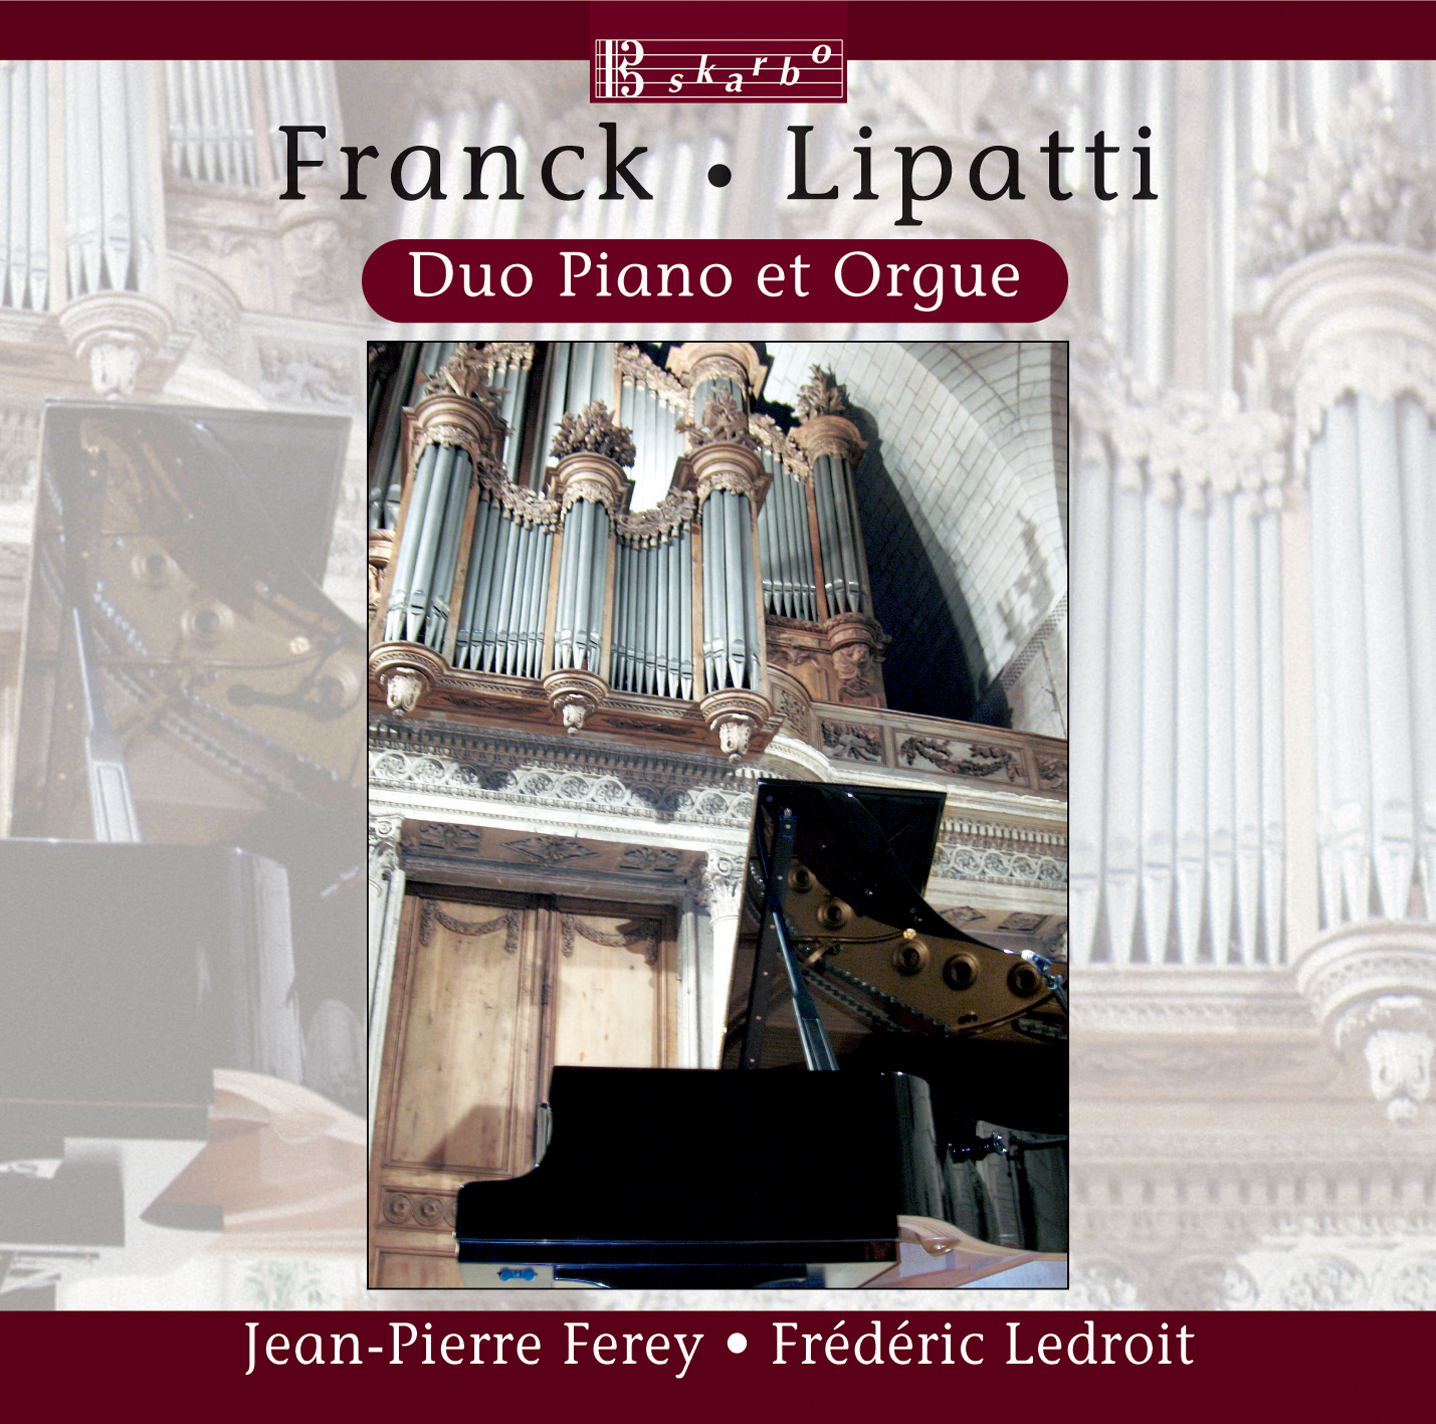 Concerto for Organ and Piano, Concerto for Organ and Piano: I. Allegretto